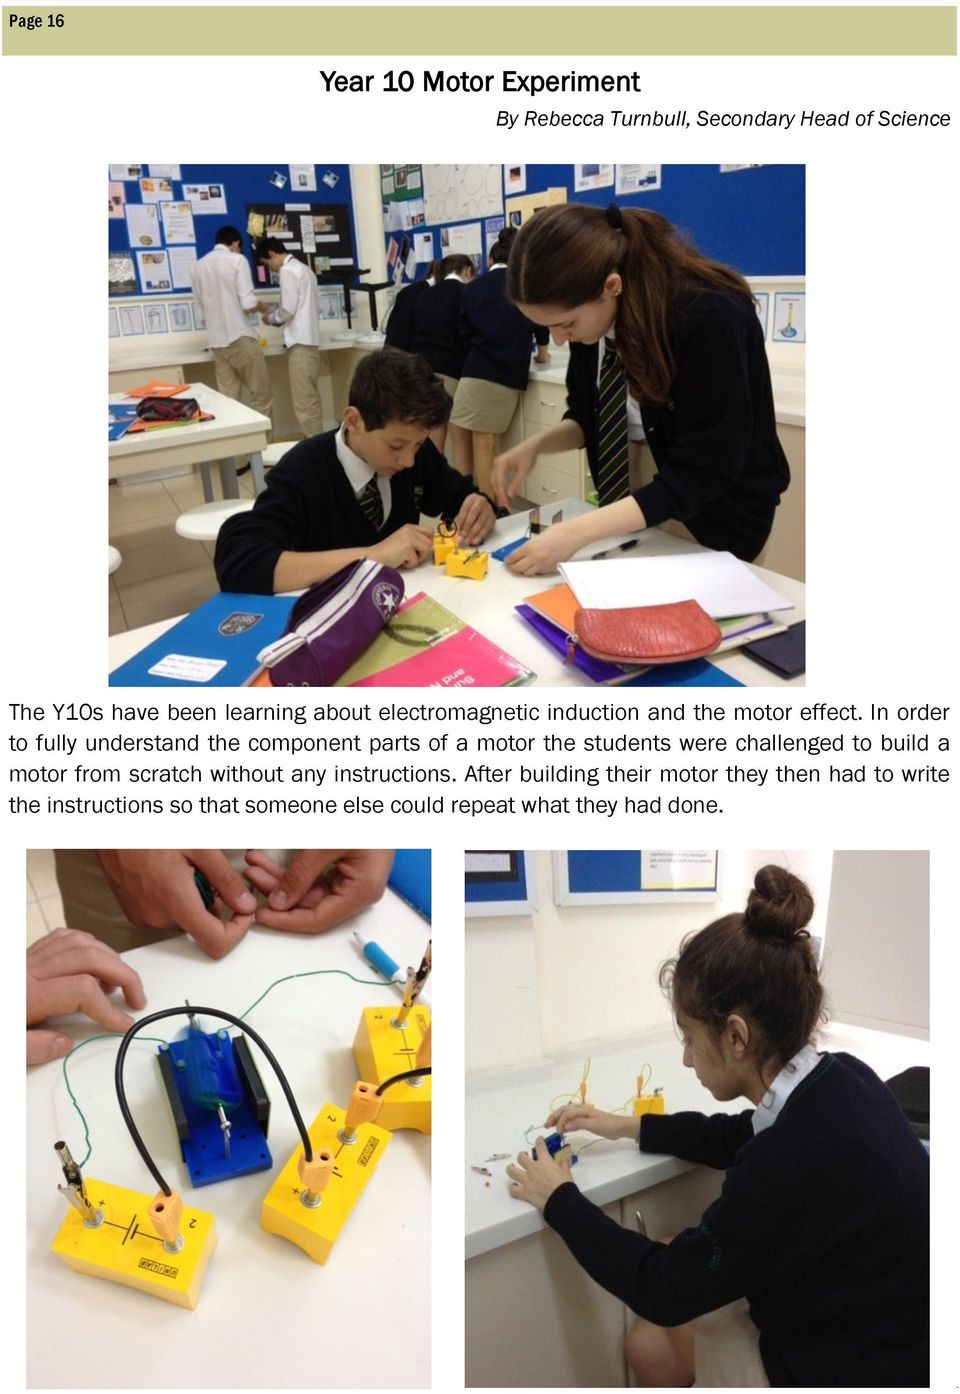 In order to fully understand the component parts of a motor the students were challenged to build a motor